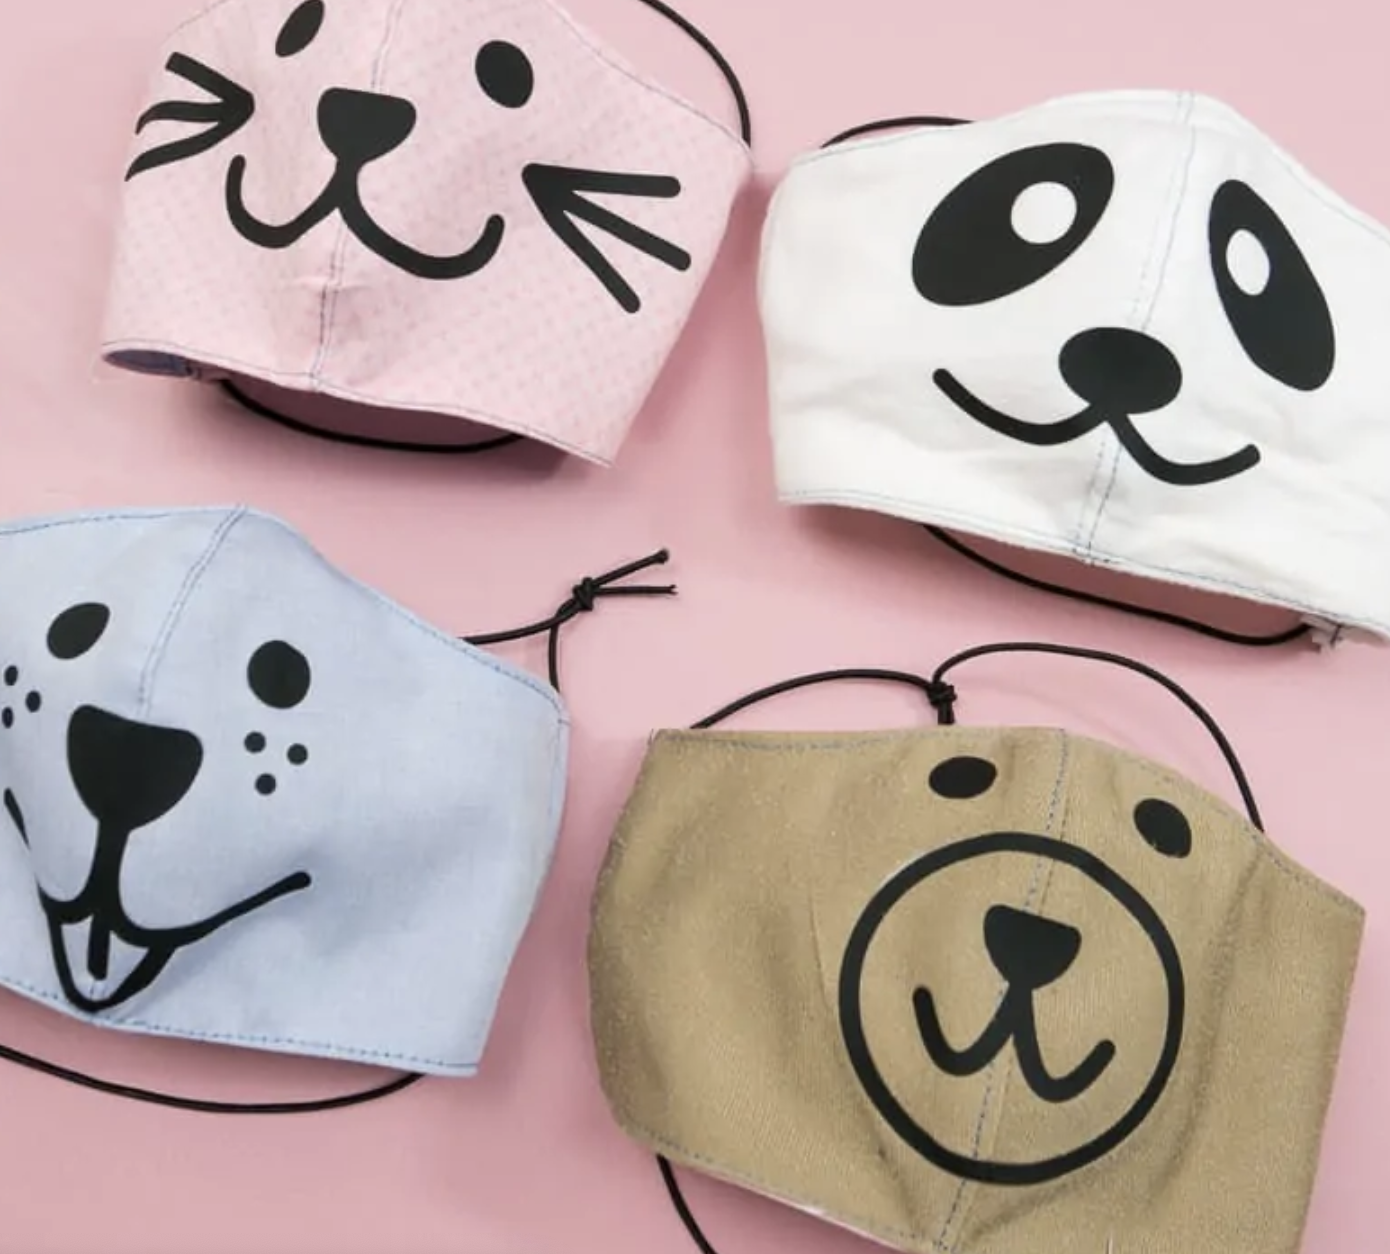 Animal face mask designs